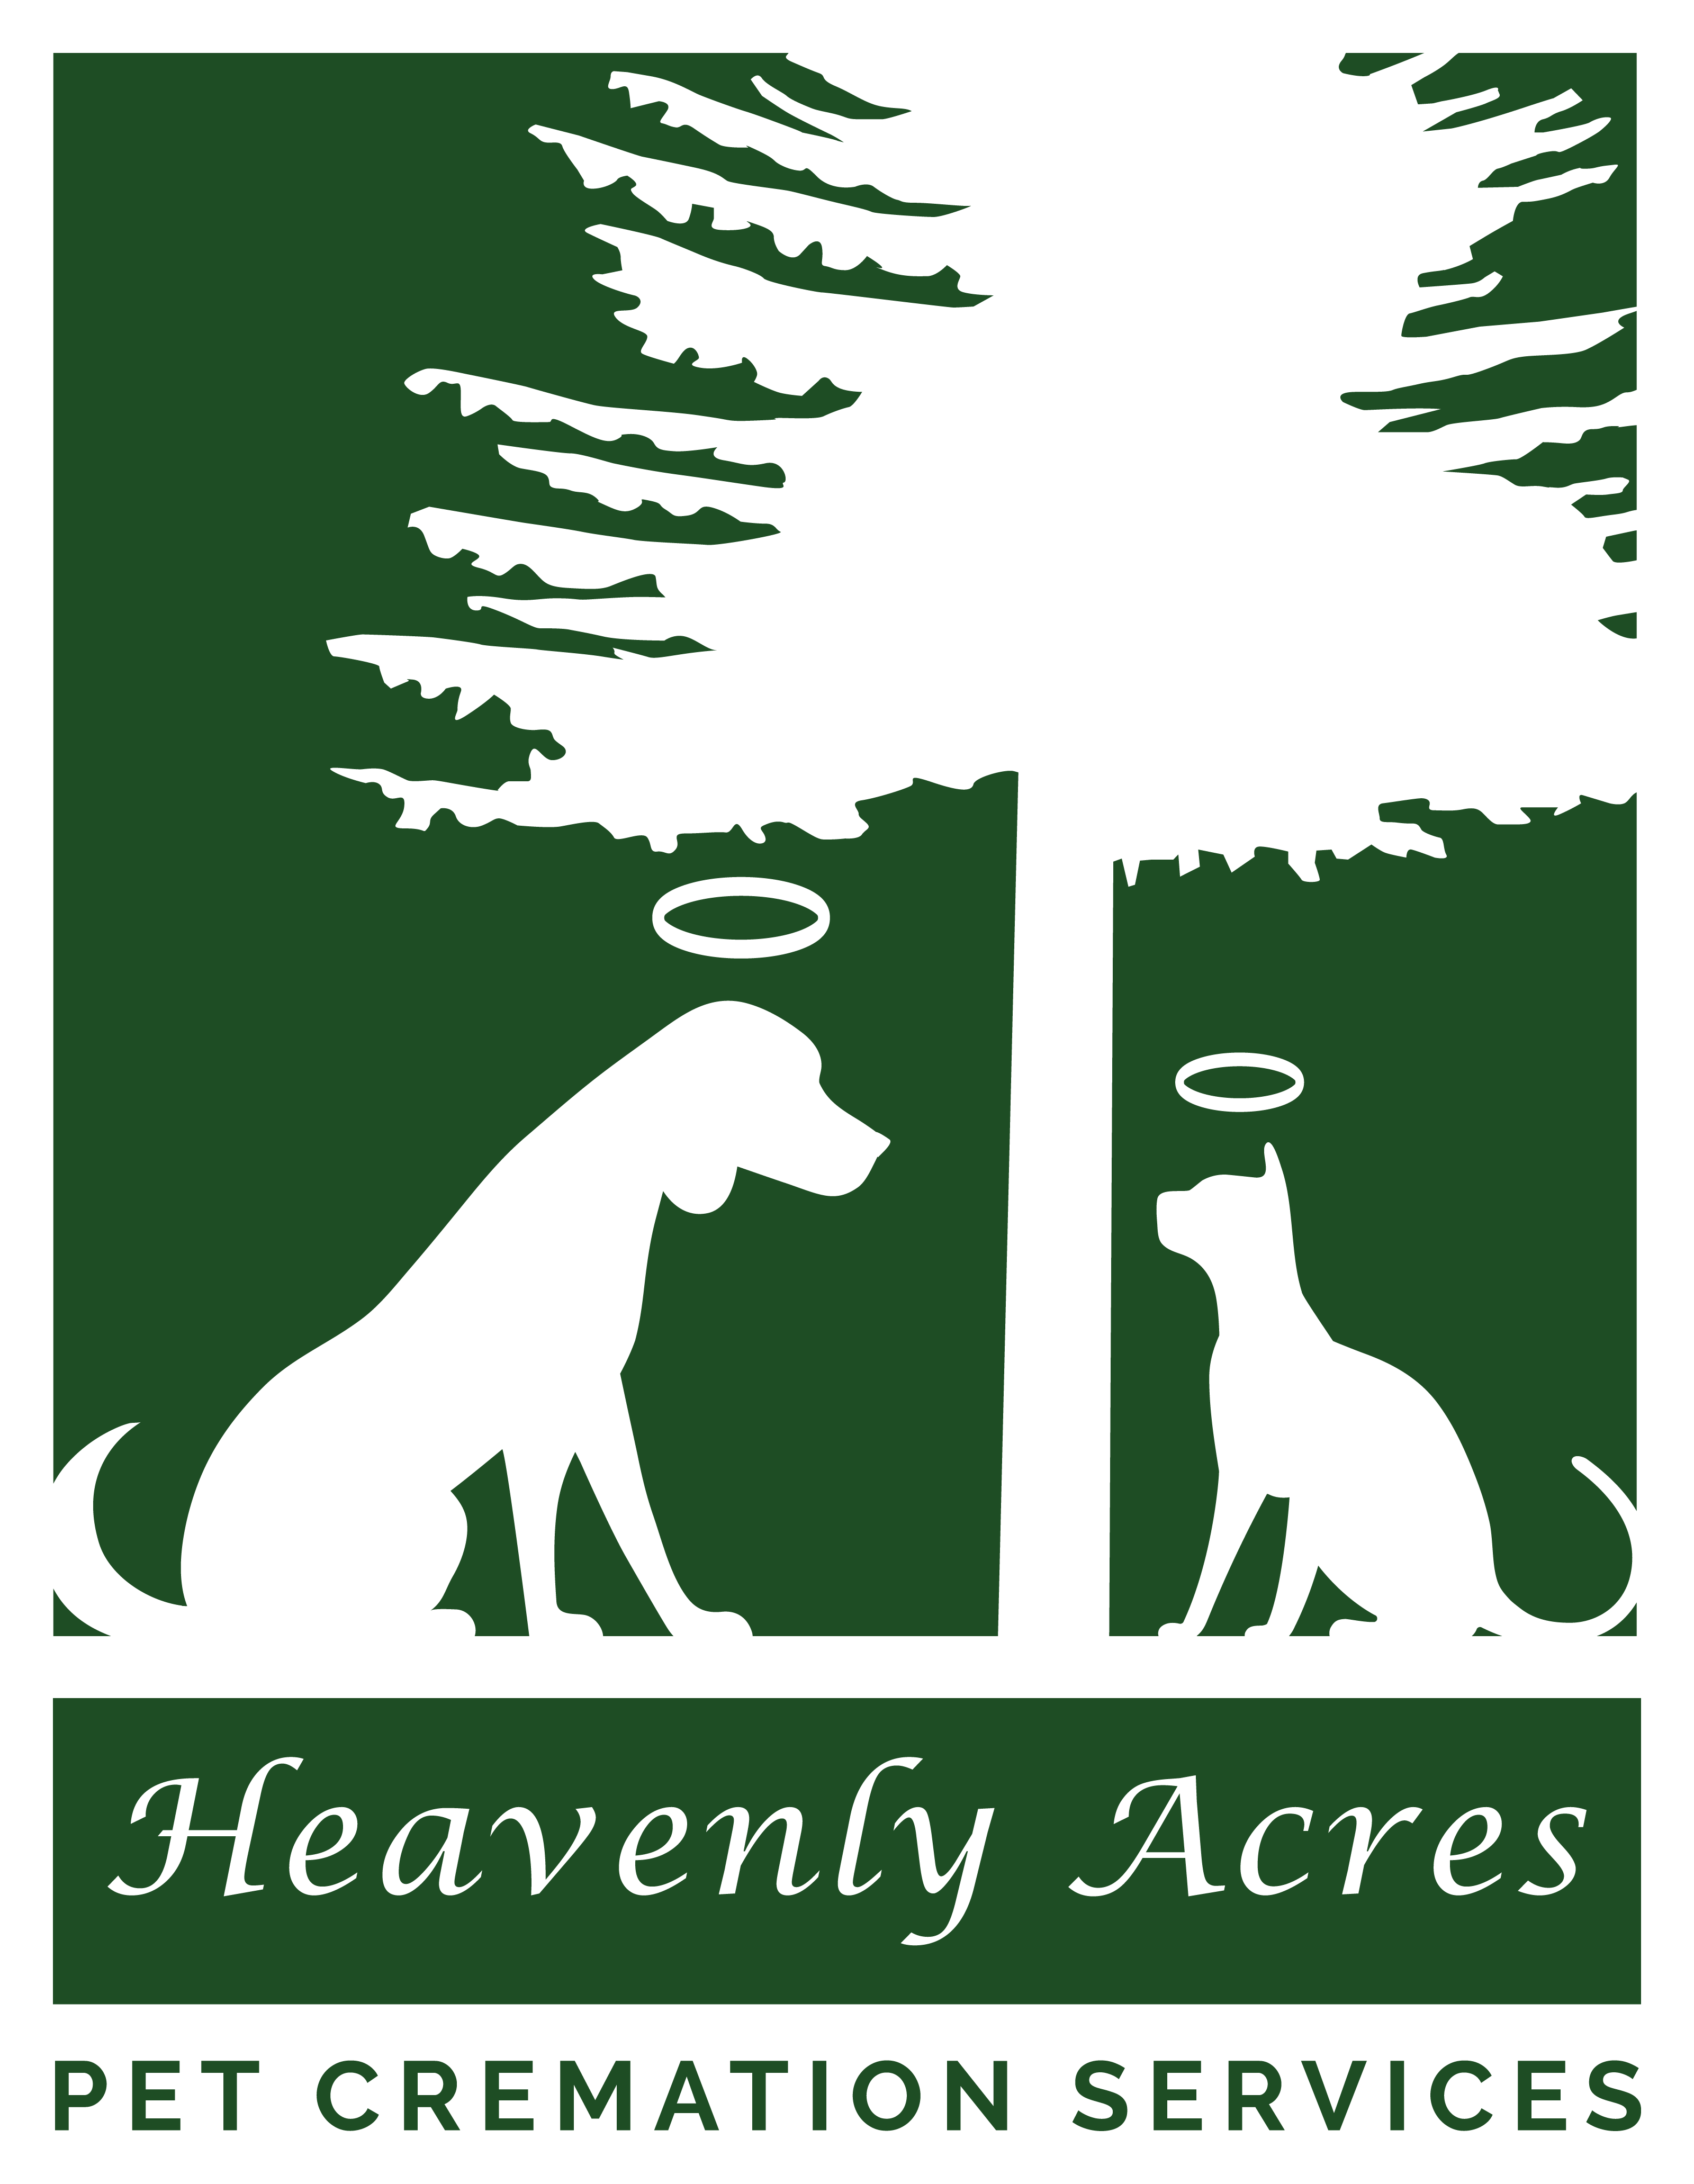 Thank you to our Ties & Tails Pearl Sponsor, Heavenly Acres Pet Cremation Services